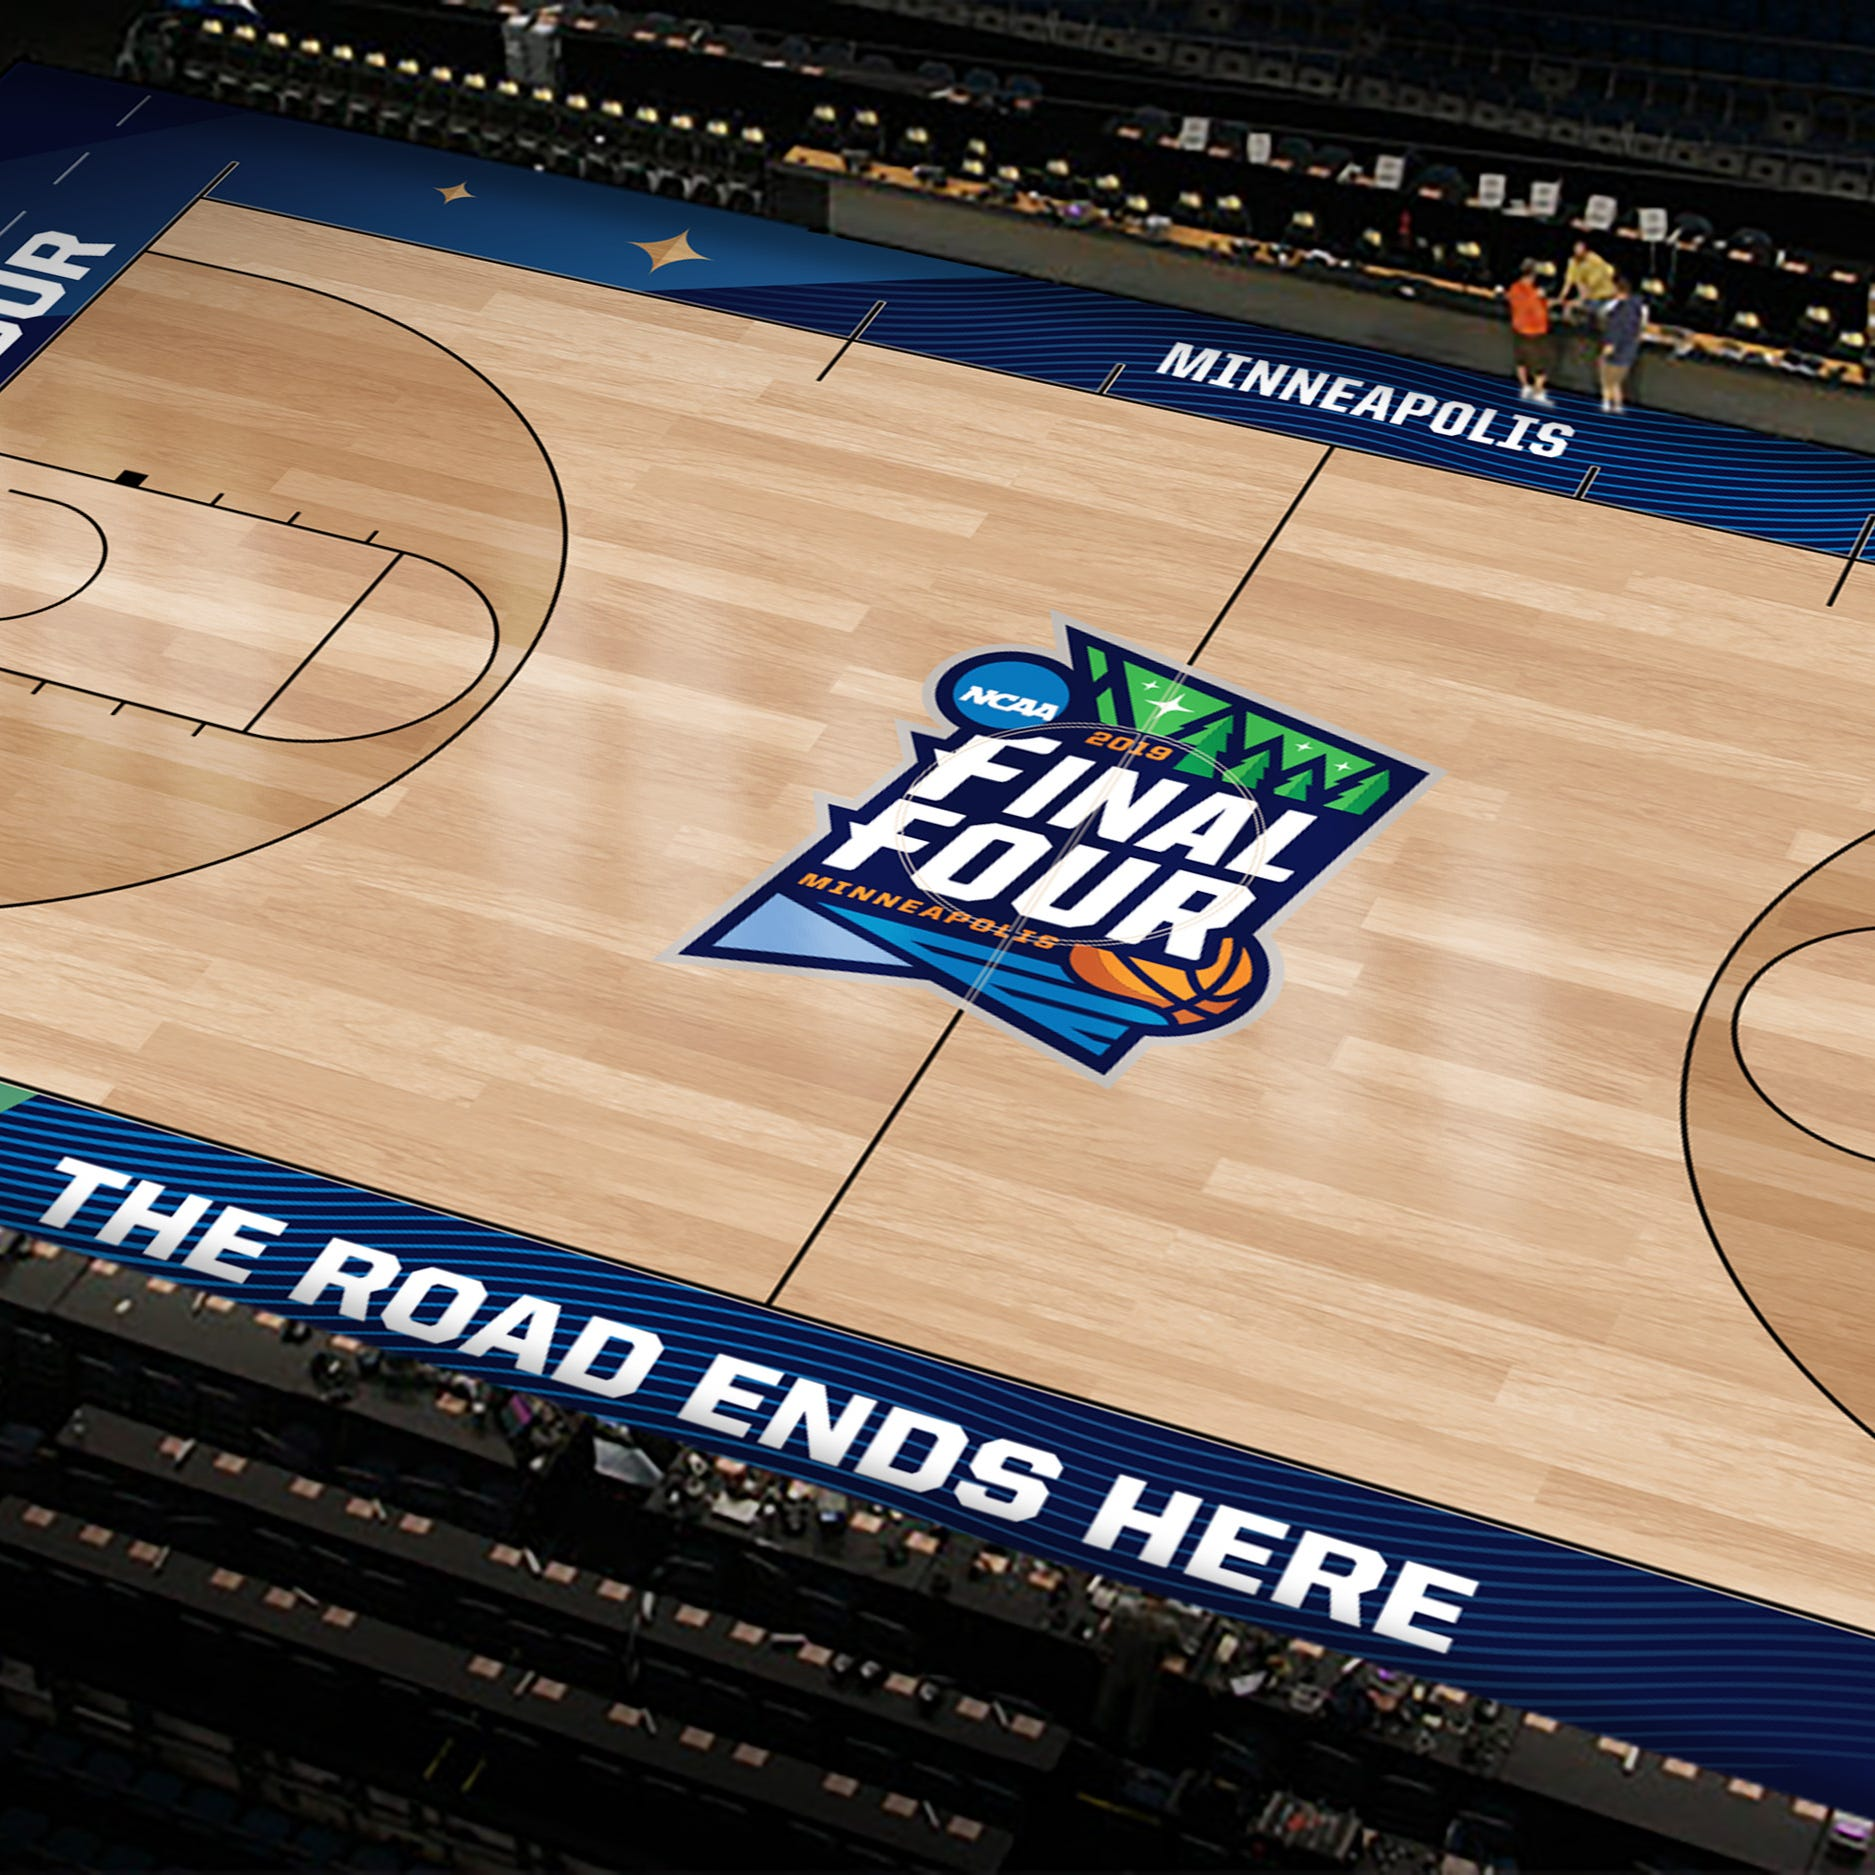 How two Ball State alums designed the Final Four court and logo